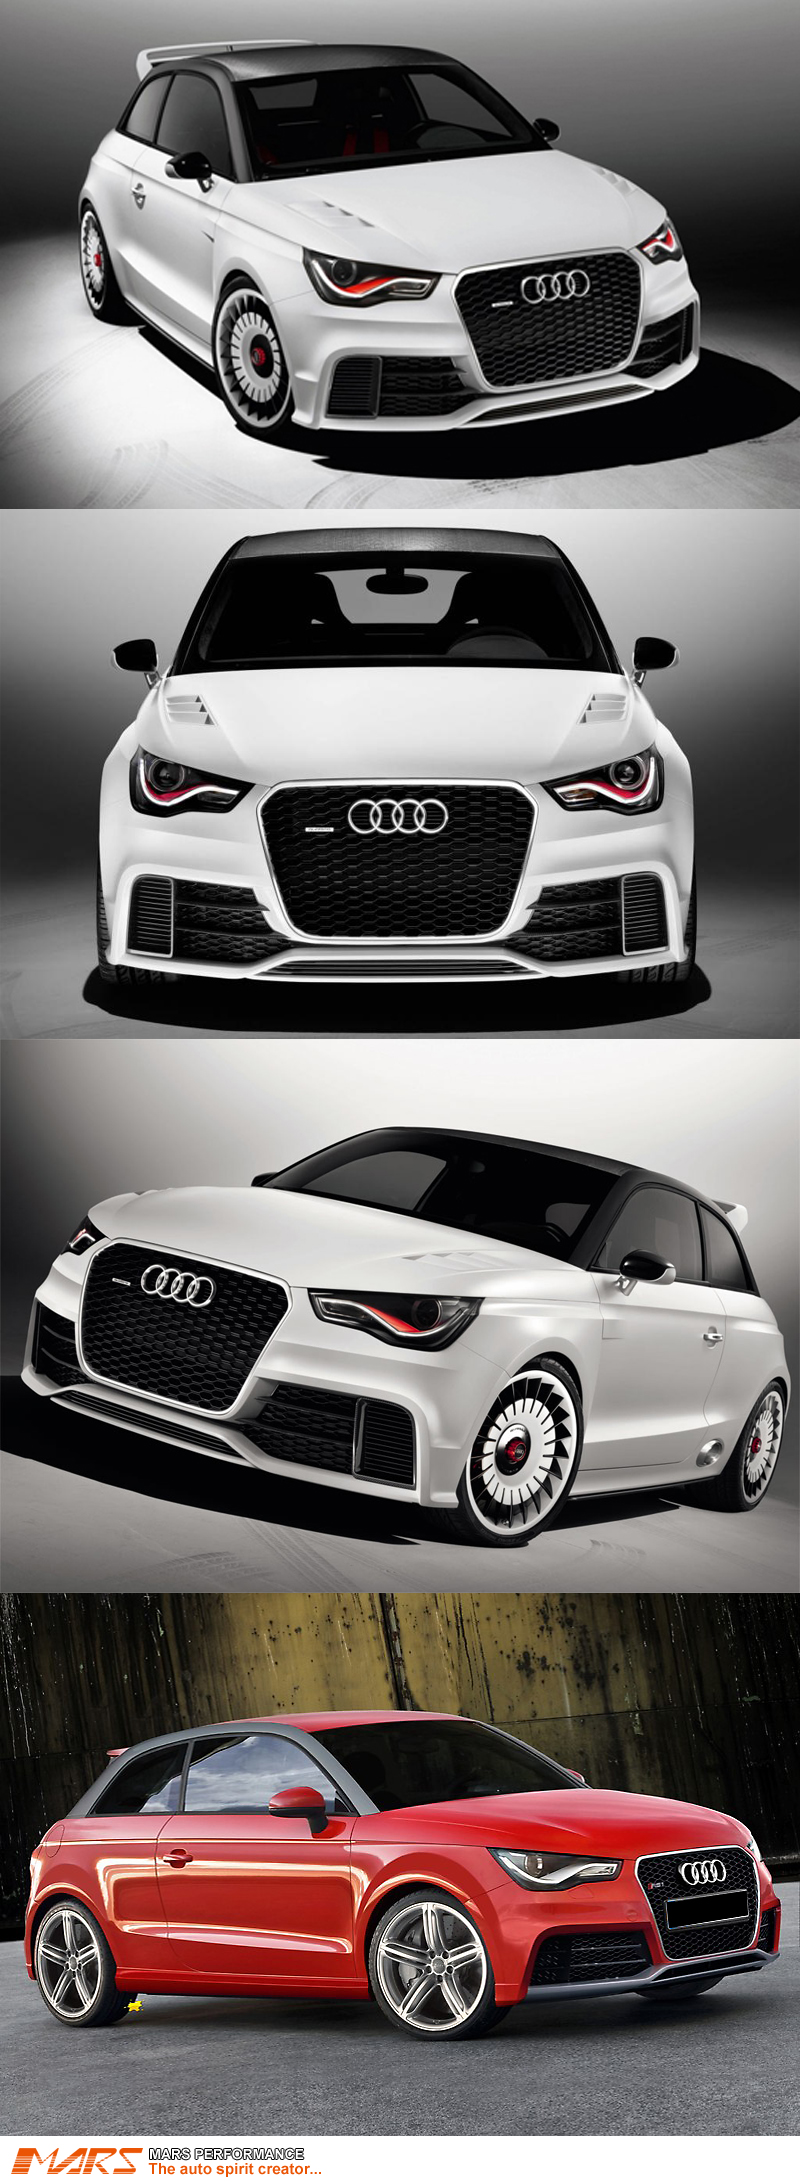 Details About Chrome Black Rs1 Honeycomb Style Front Bumper Grille Grill For Audi A1 8x 10 14